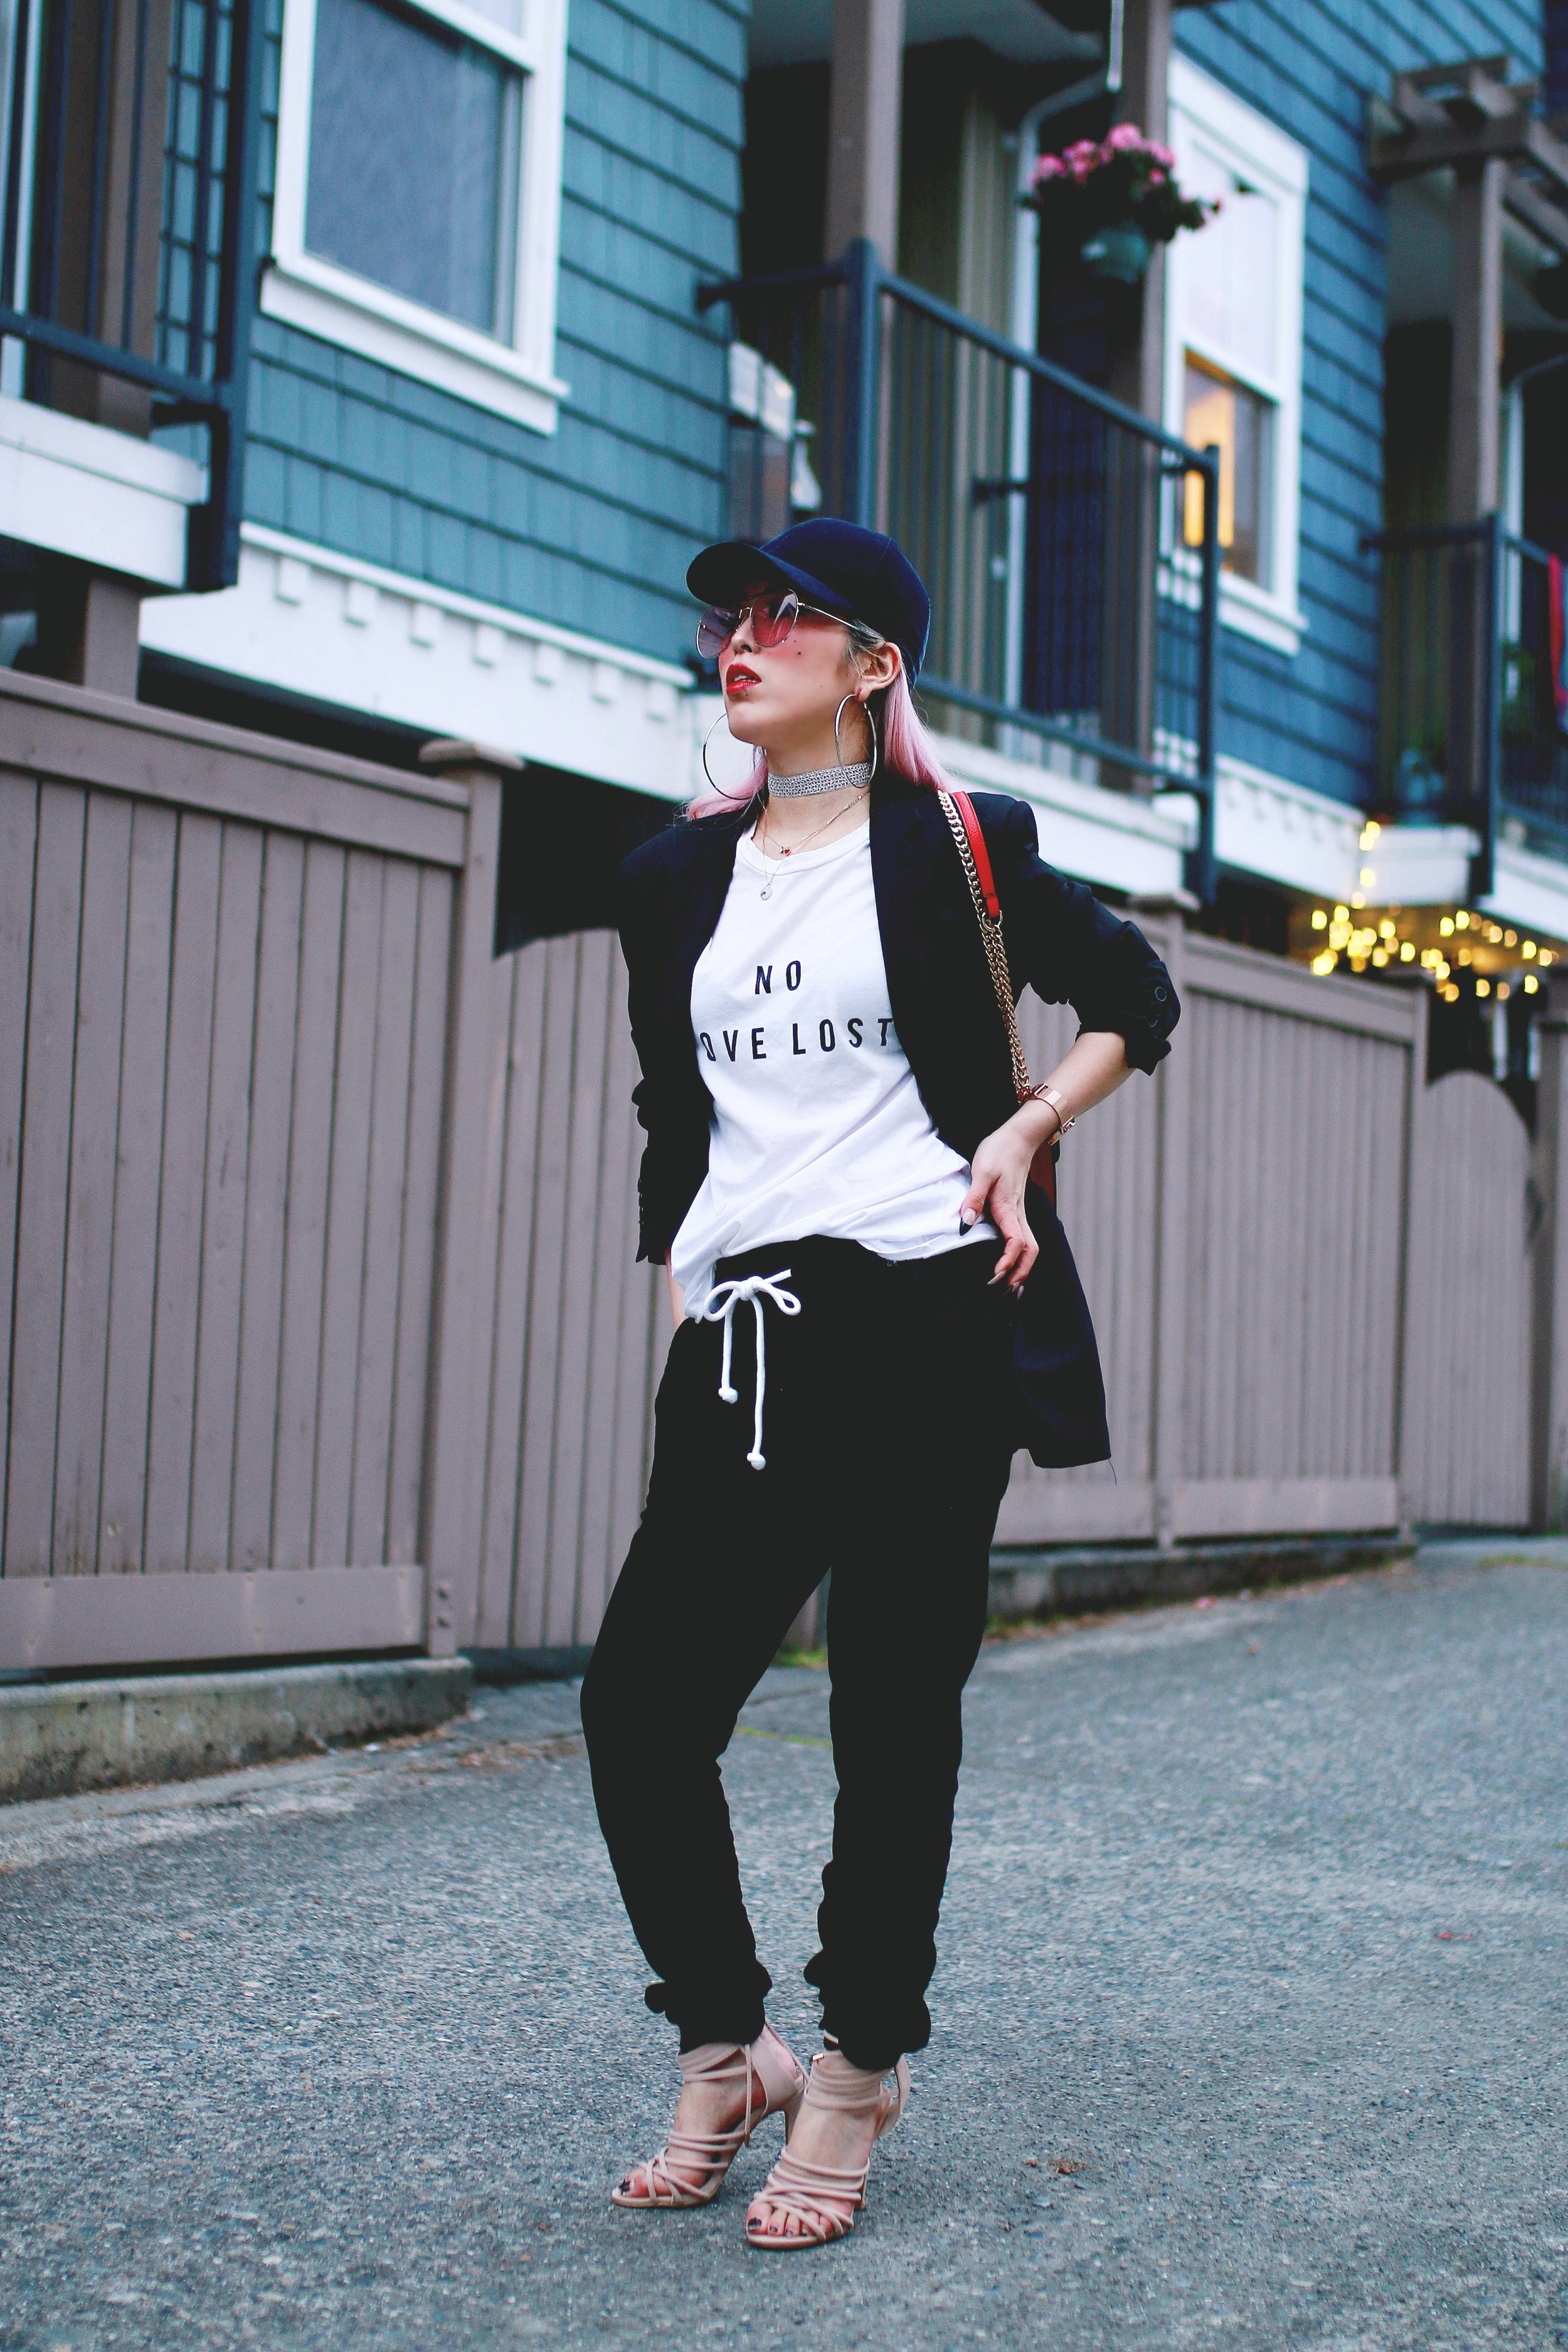 H&M Baseball Cap_Shop Sincerely Jules No LOVE LOST Tee_H&M Sweatpants_YSL Boyfriend Blazer_Zara Choker_Forever 21 Hoop Earrings_Mellow World Red Bag_Charlotte Russe Nude Sandals_L'Oreal Red Lipstick_Aikas Love Closet_Seattle Fashion Style Blogger_Pink Hair